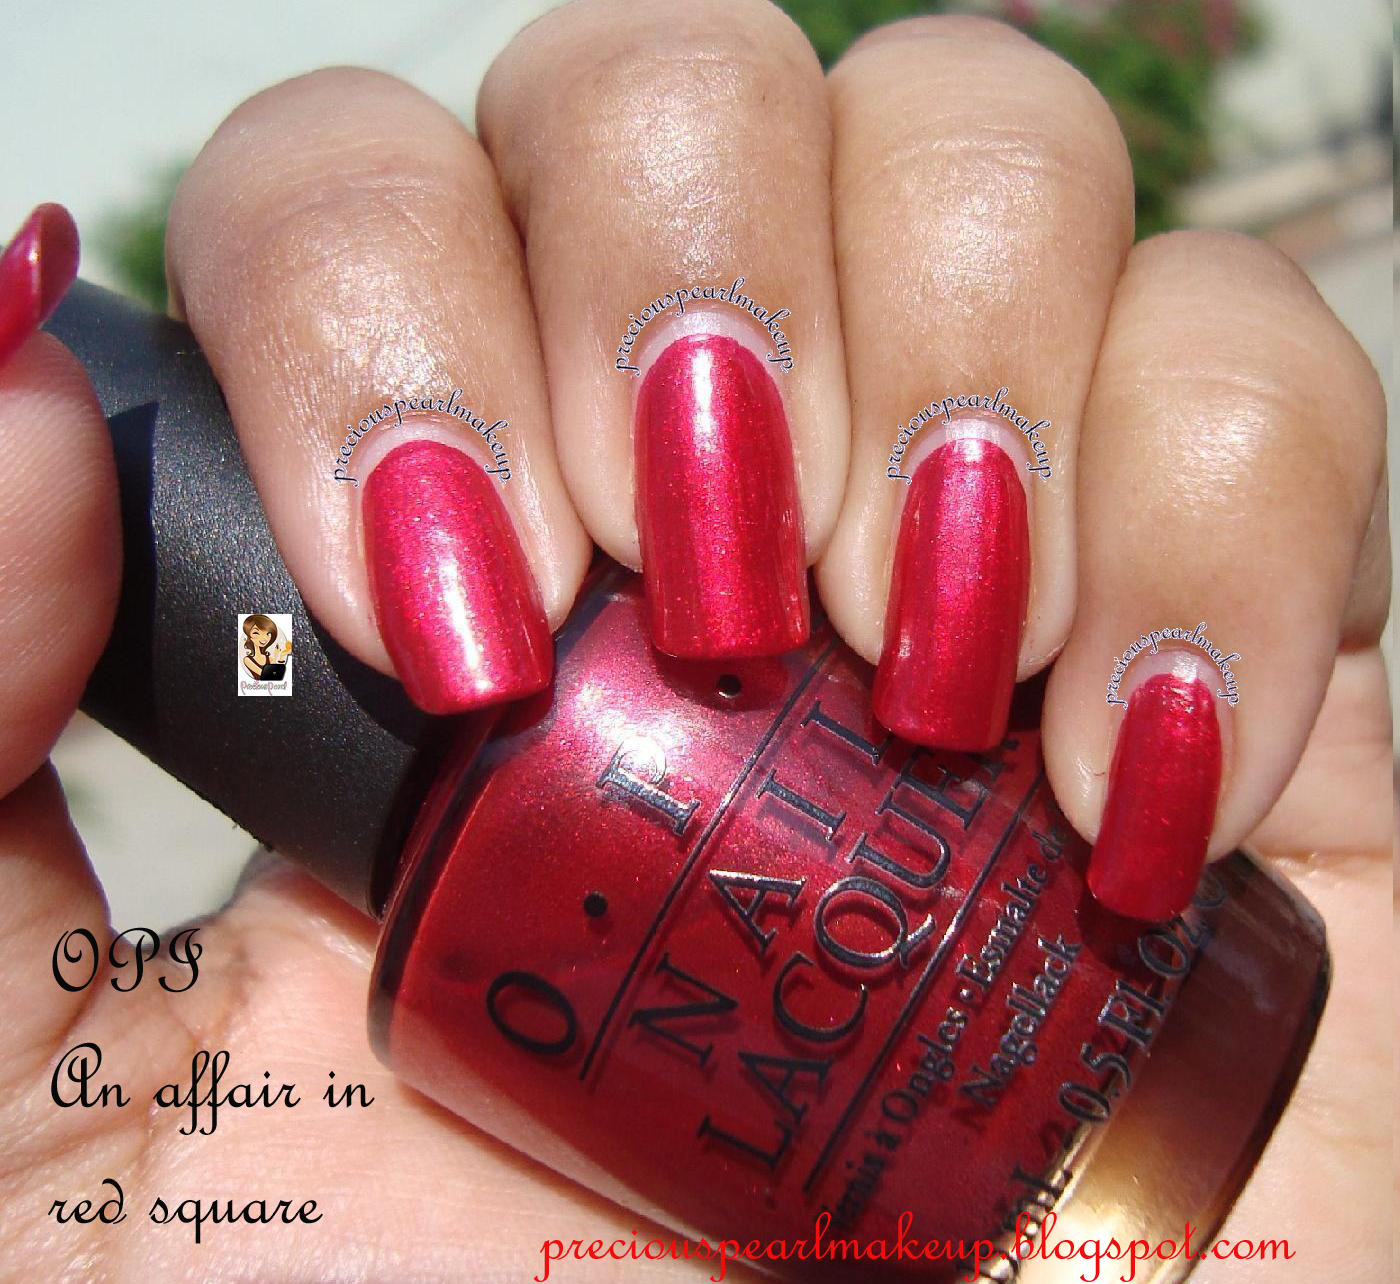 preciouspearlmakeup: OPI Nail Lacquer Affair in Red Square